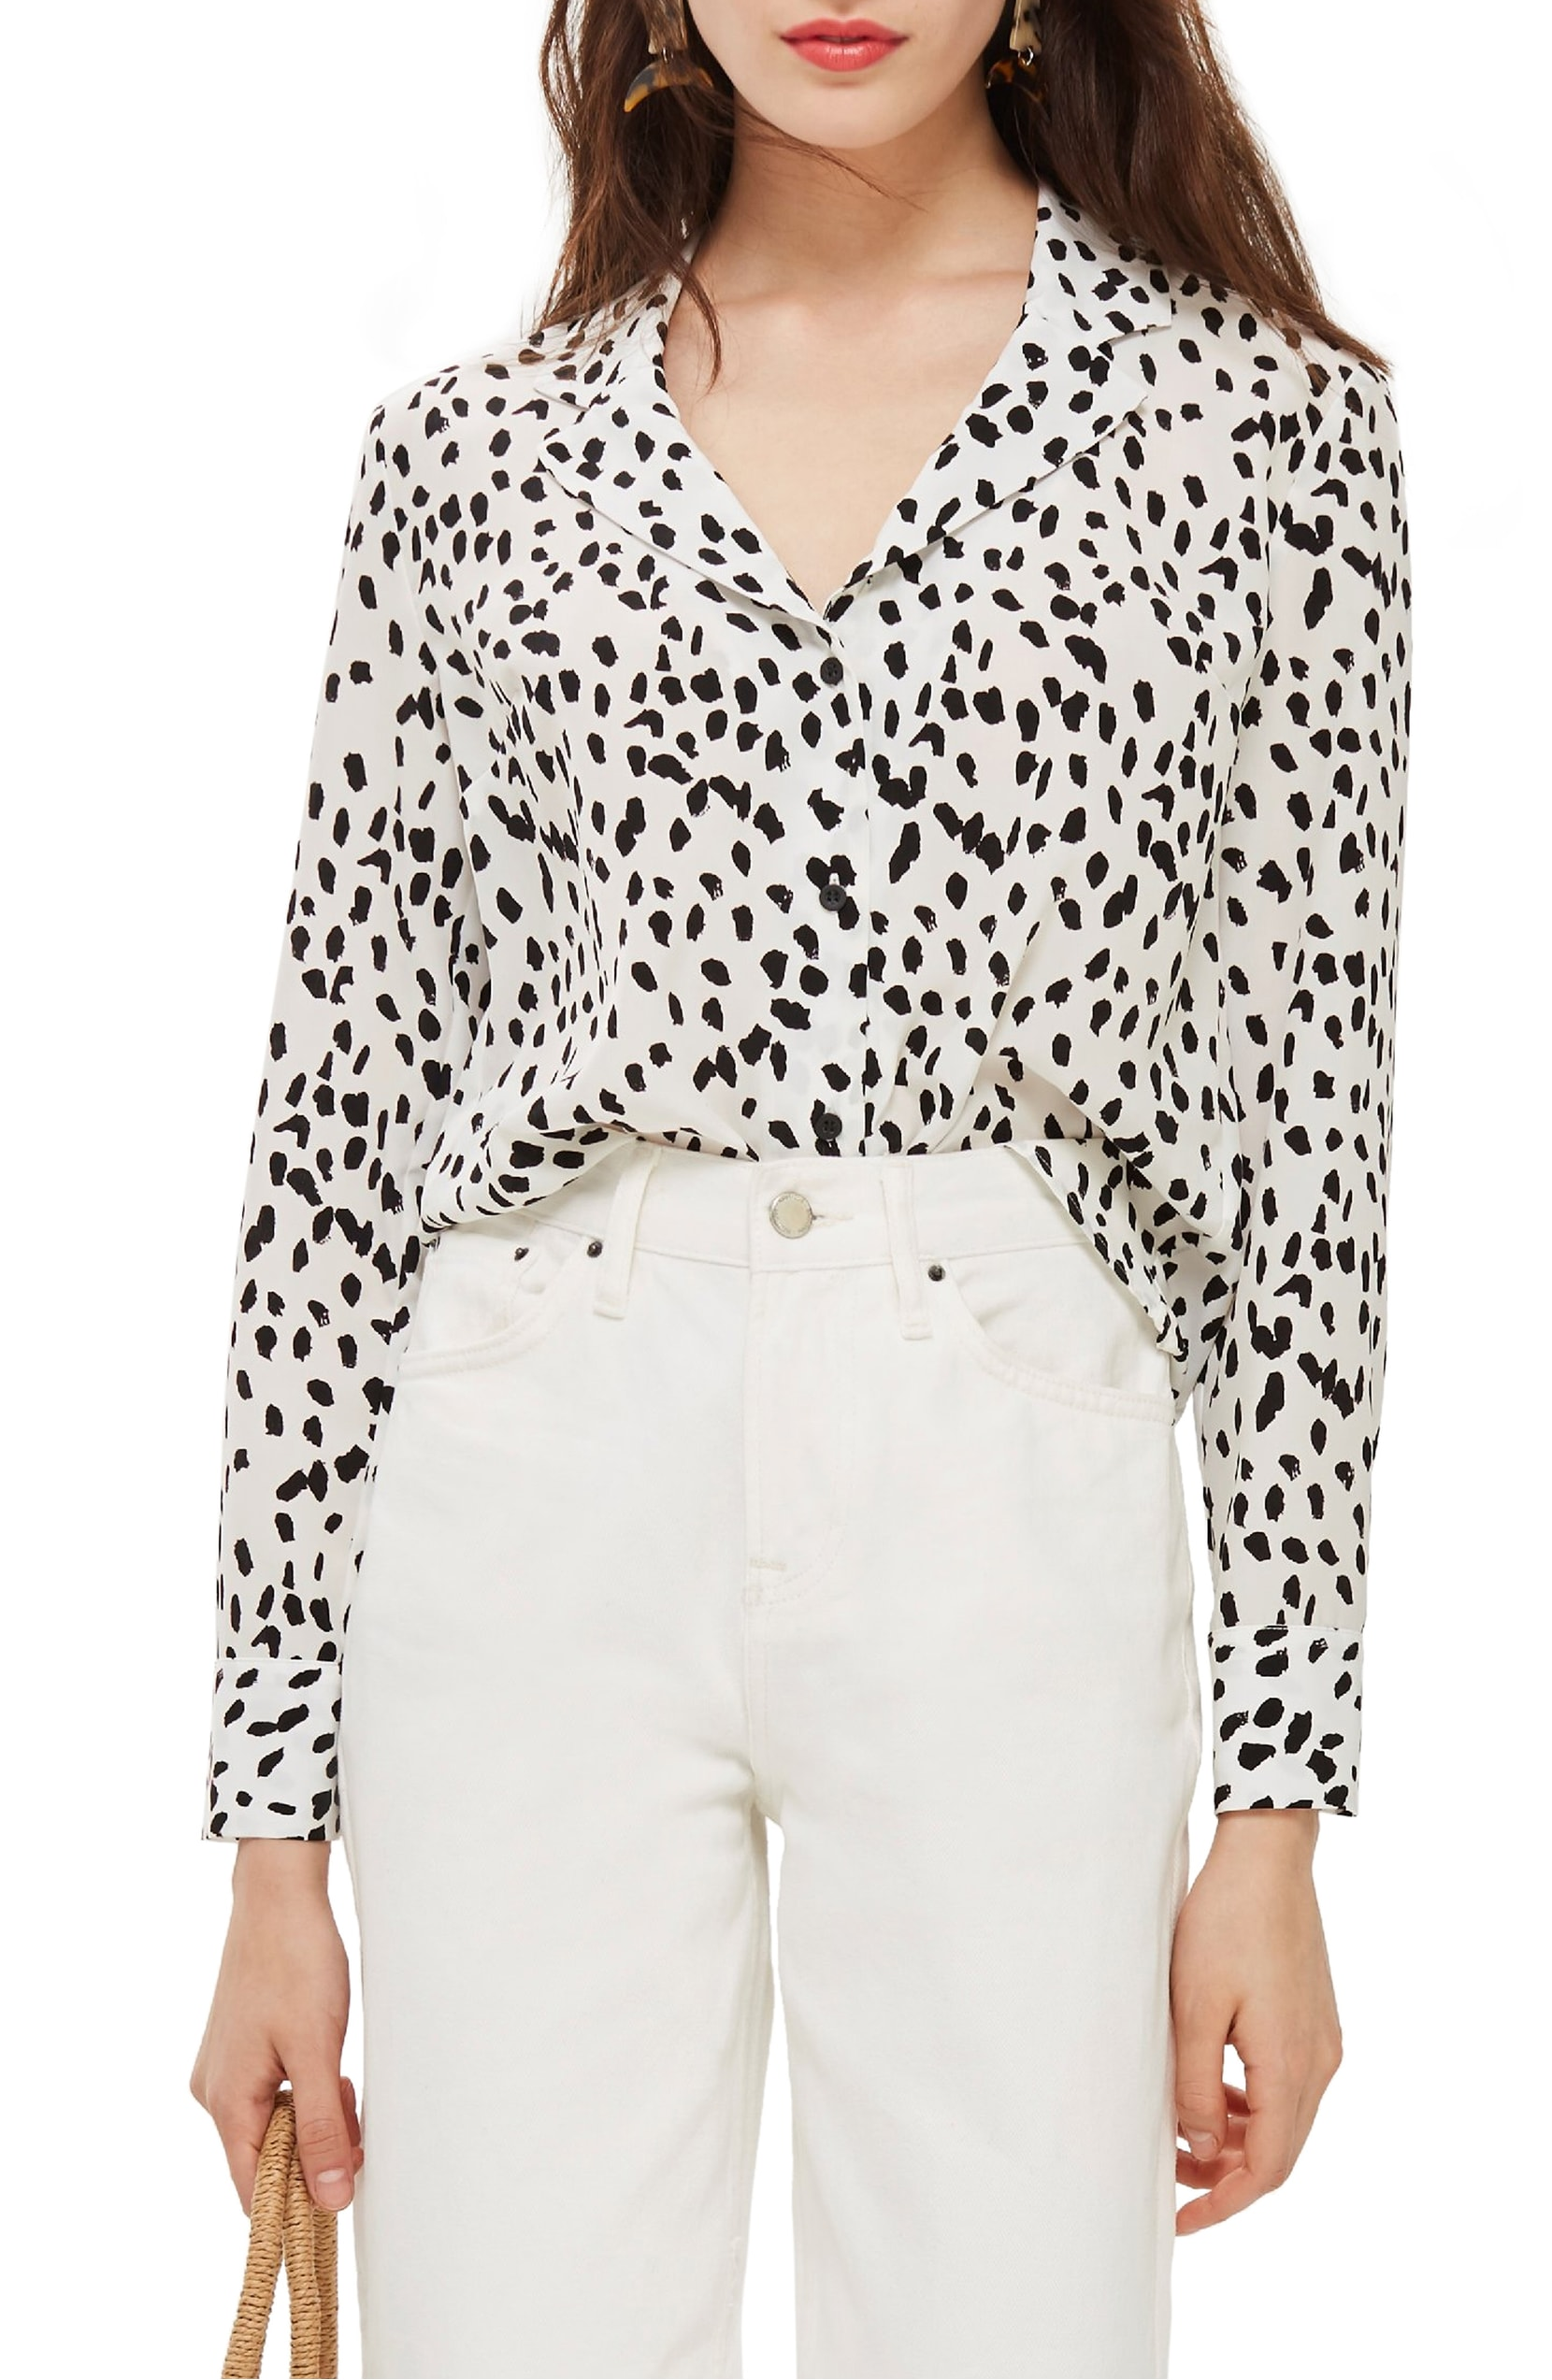 The Trend: Animal Print.{ }Take a walk on the wild side in this boldly printed top that's perfectly appropriate for work (or the party after). TOPSHOP - $68.00 (Image: Nordstrom){ }